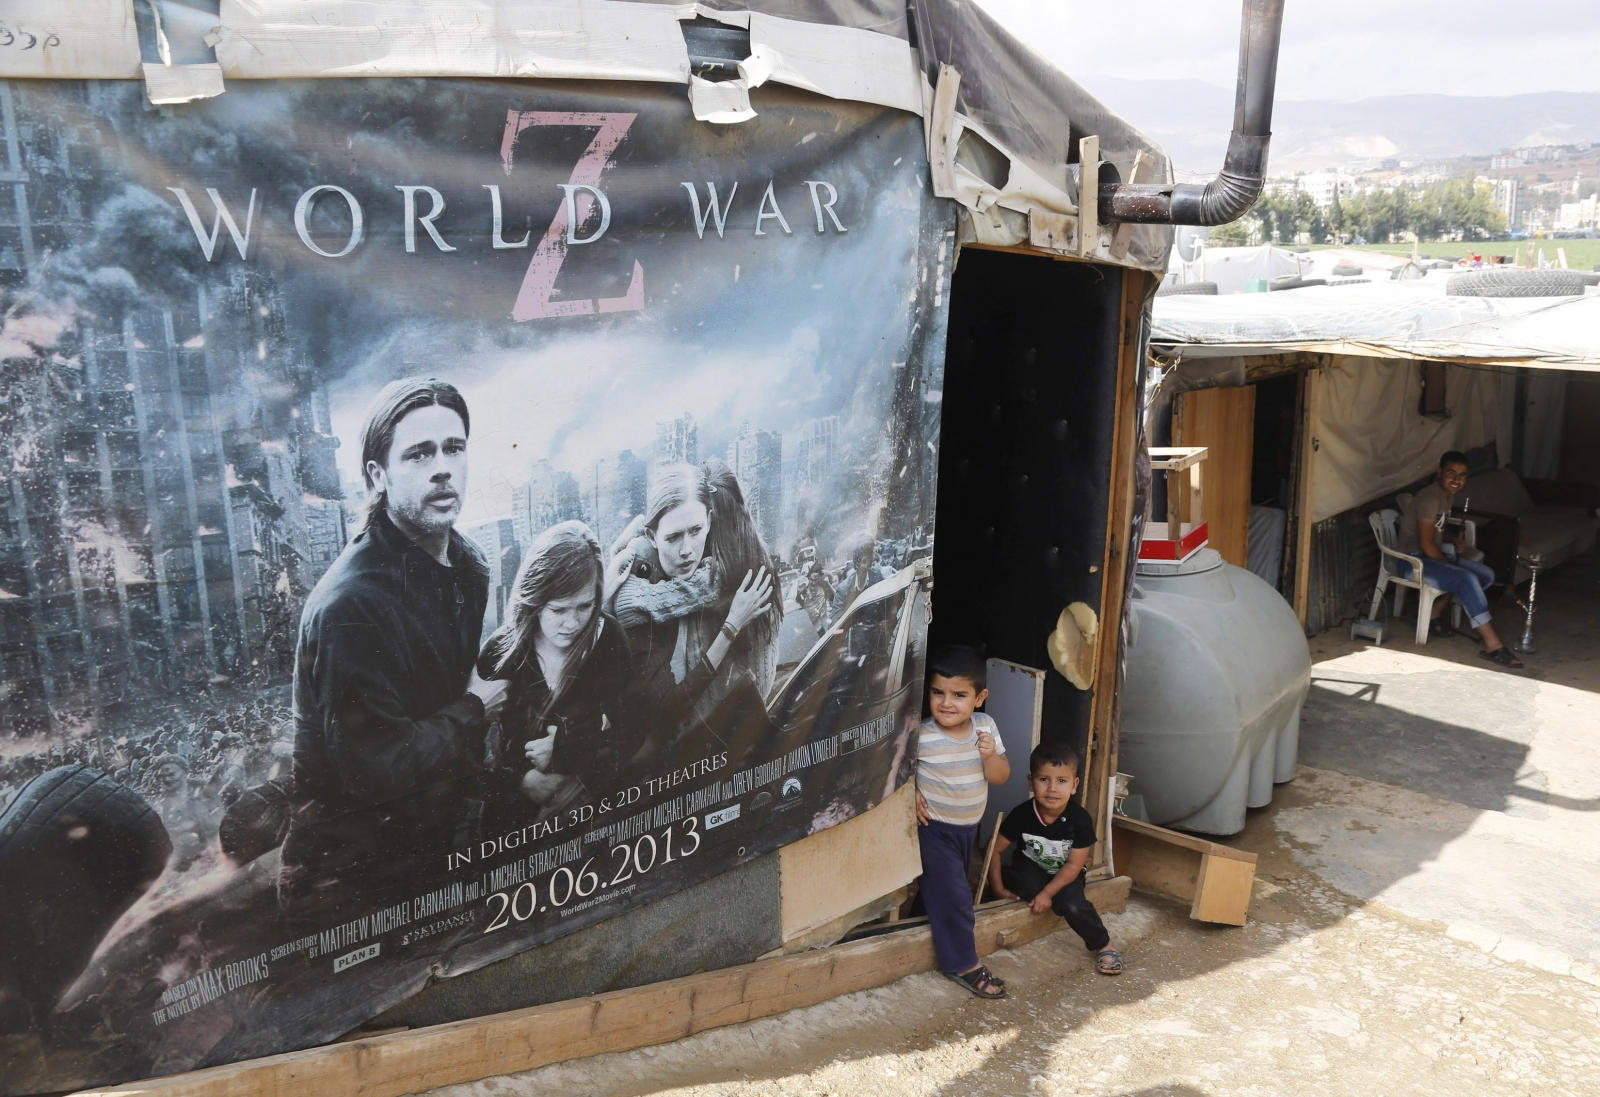 Syrian refugees in Lebanon in a shelter made from a Hollywood movie poster. (Reuters)